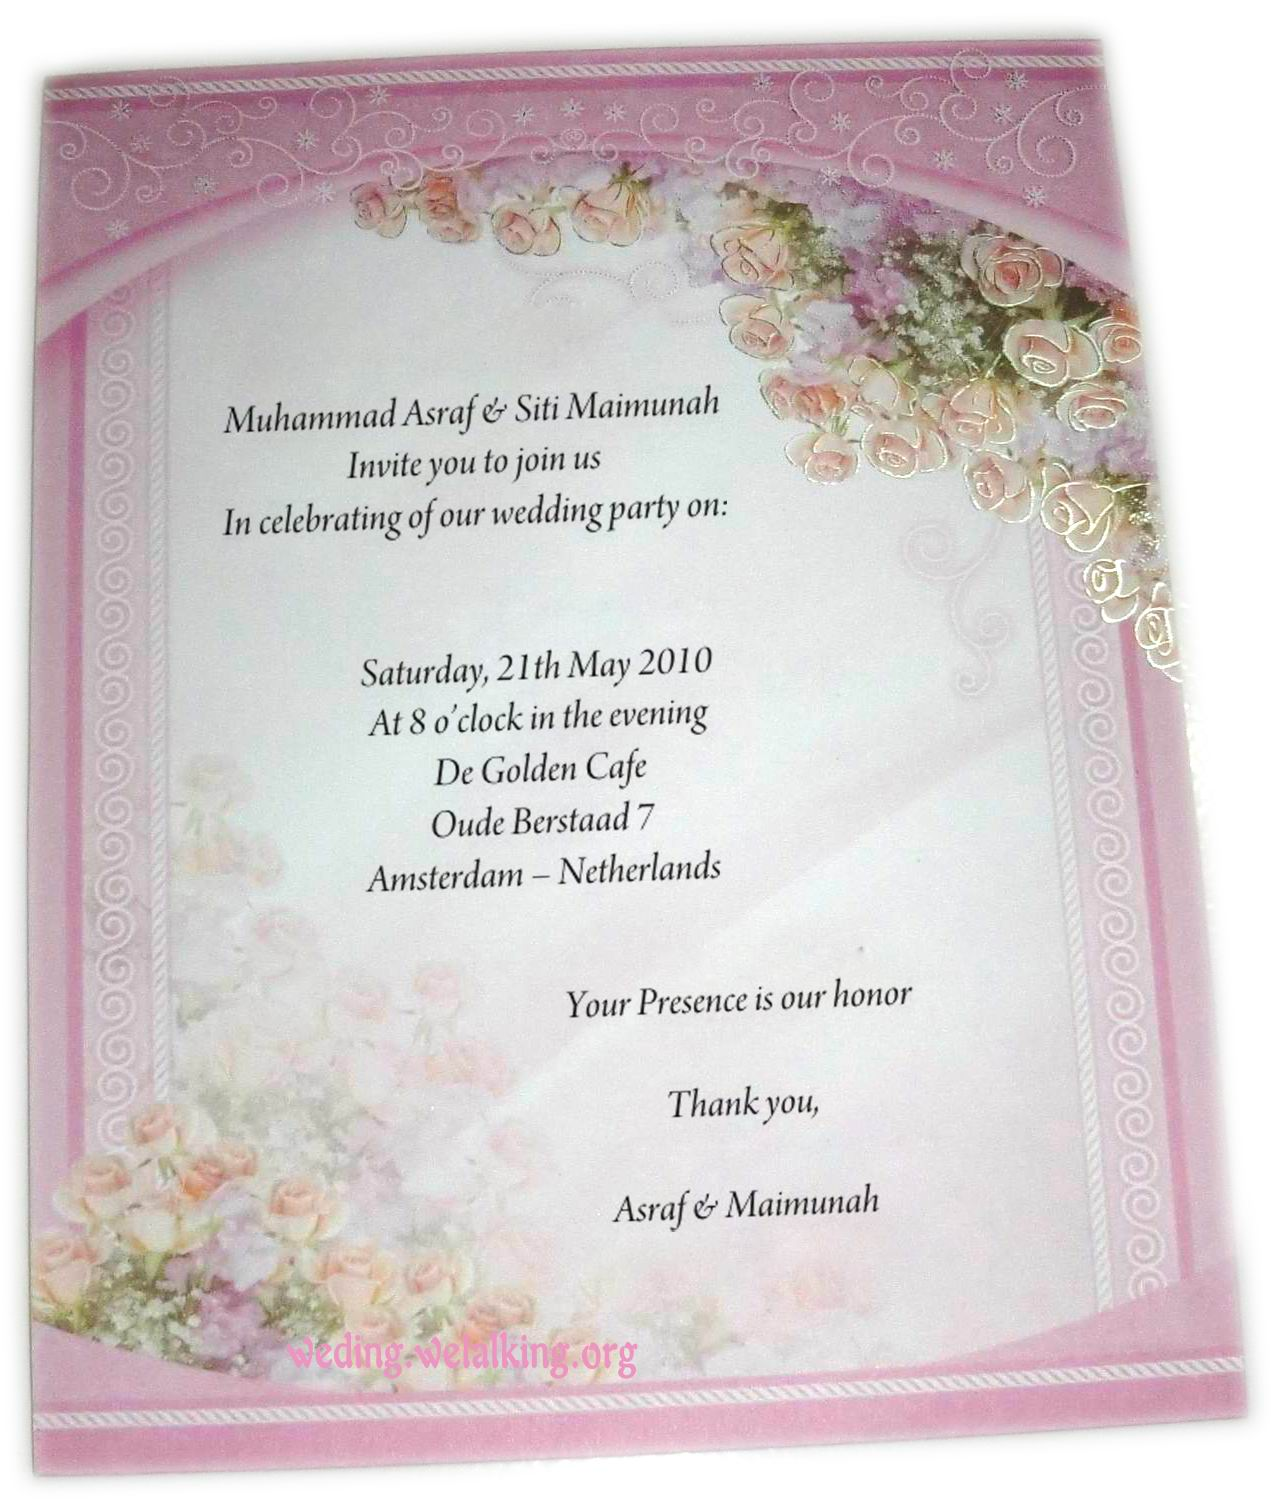 Sample Wedding Invitation Card: Zahra Alya: Expressions Of Invitation And Followed By The